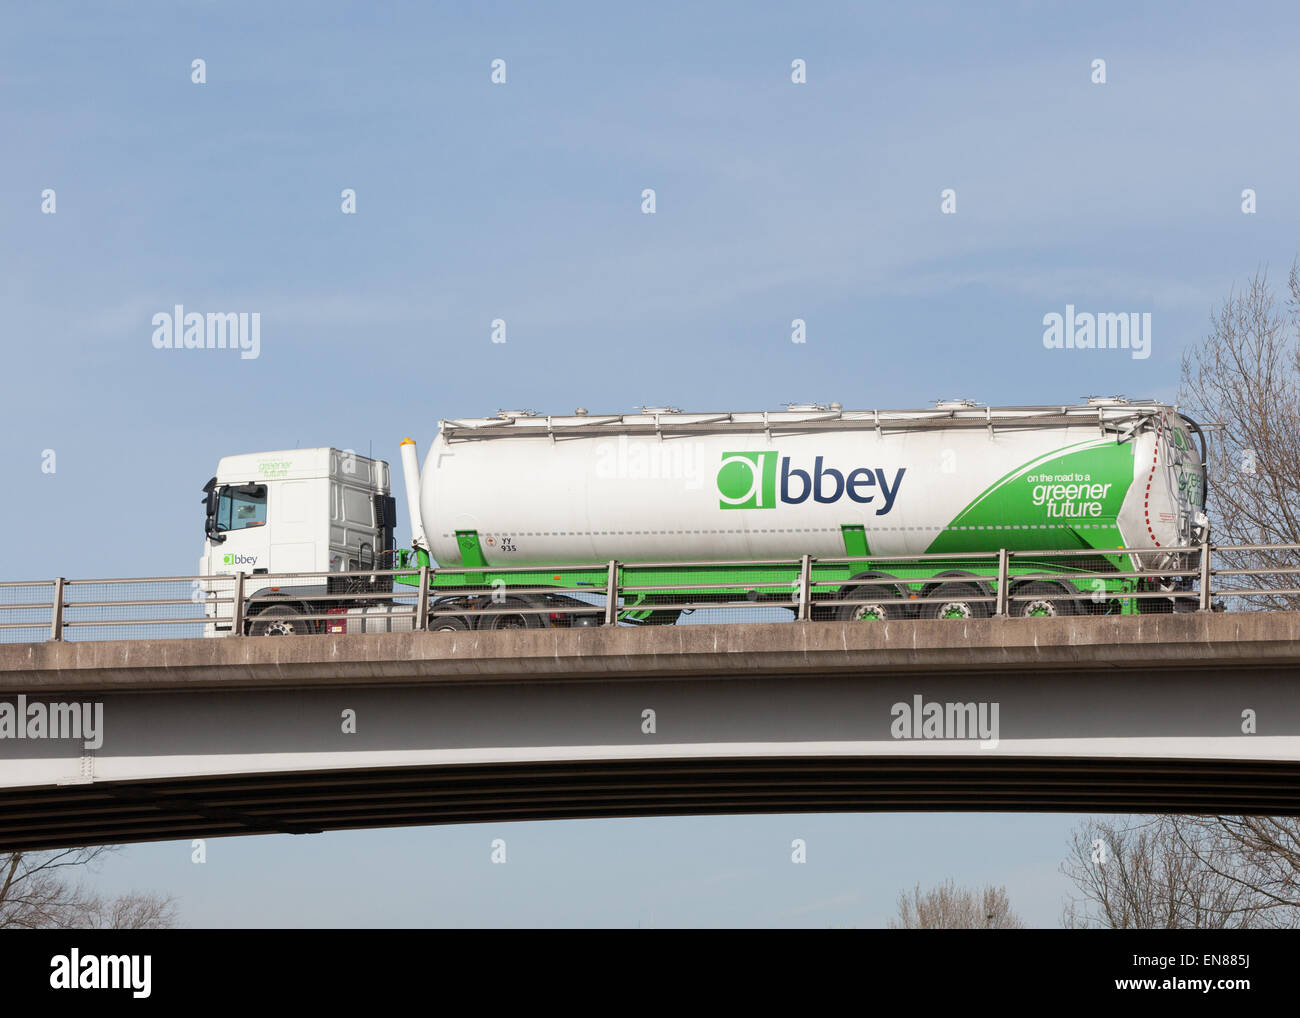 Abbey tanker travelling through the Midlands in the UK. - Stock Image